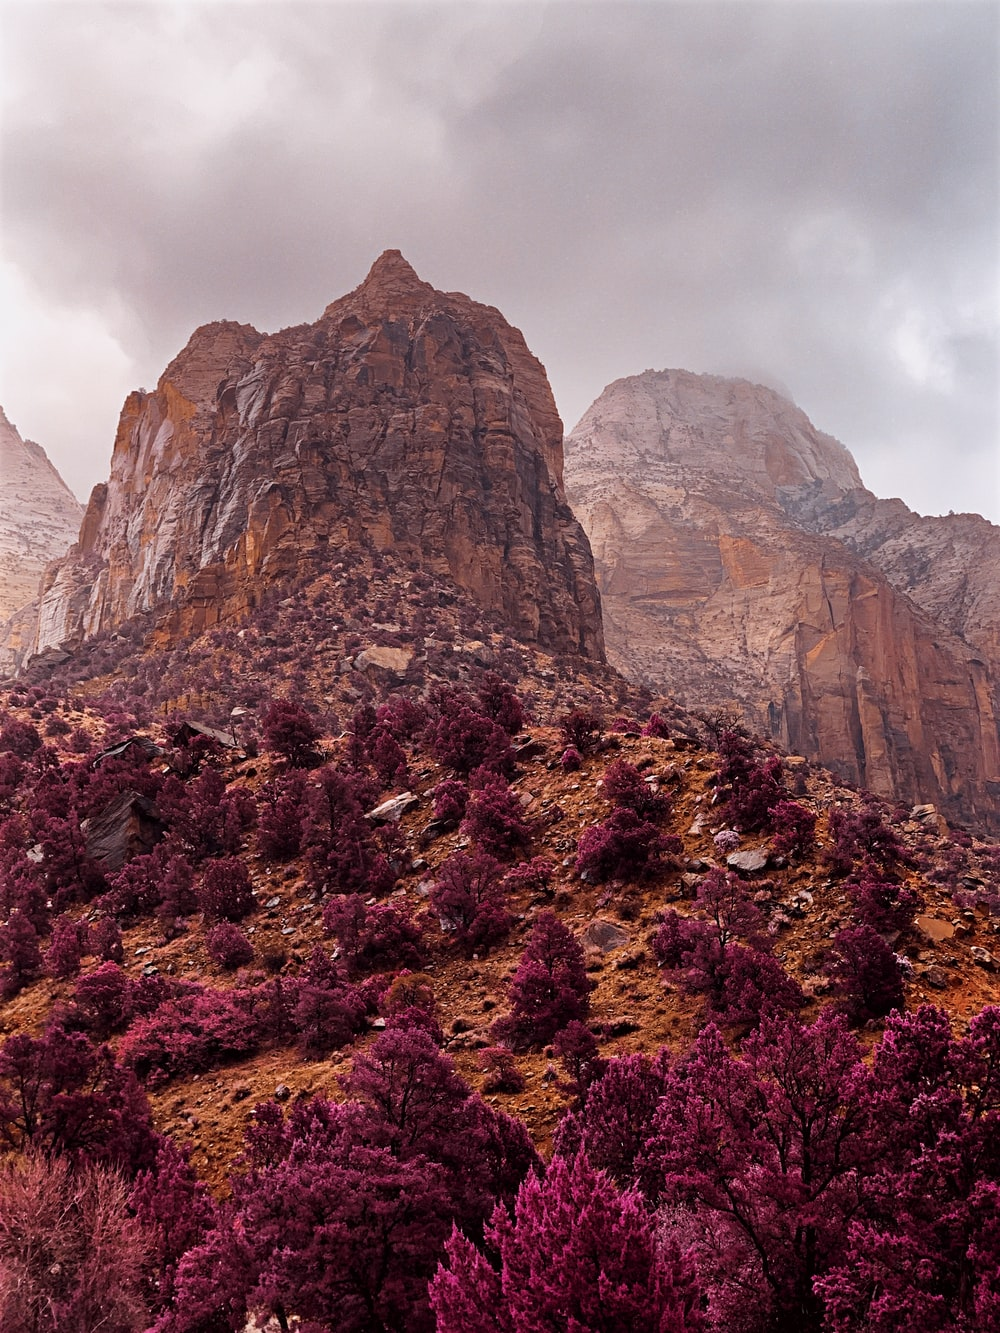 purple and brown flower field near brown rocky mountain under white cloudy sky during daytime